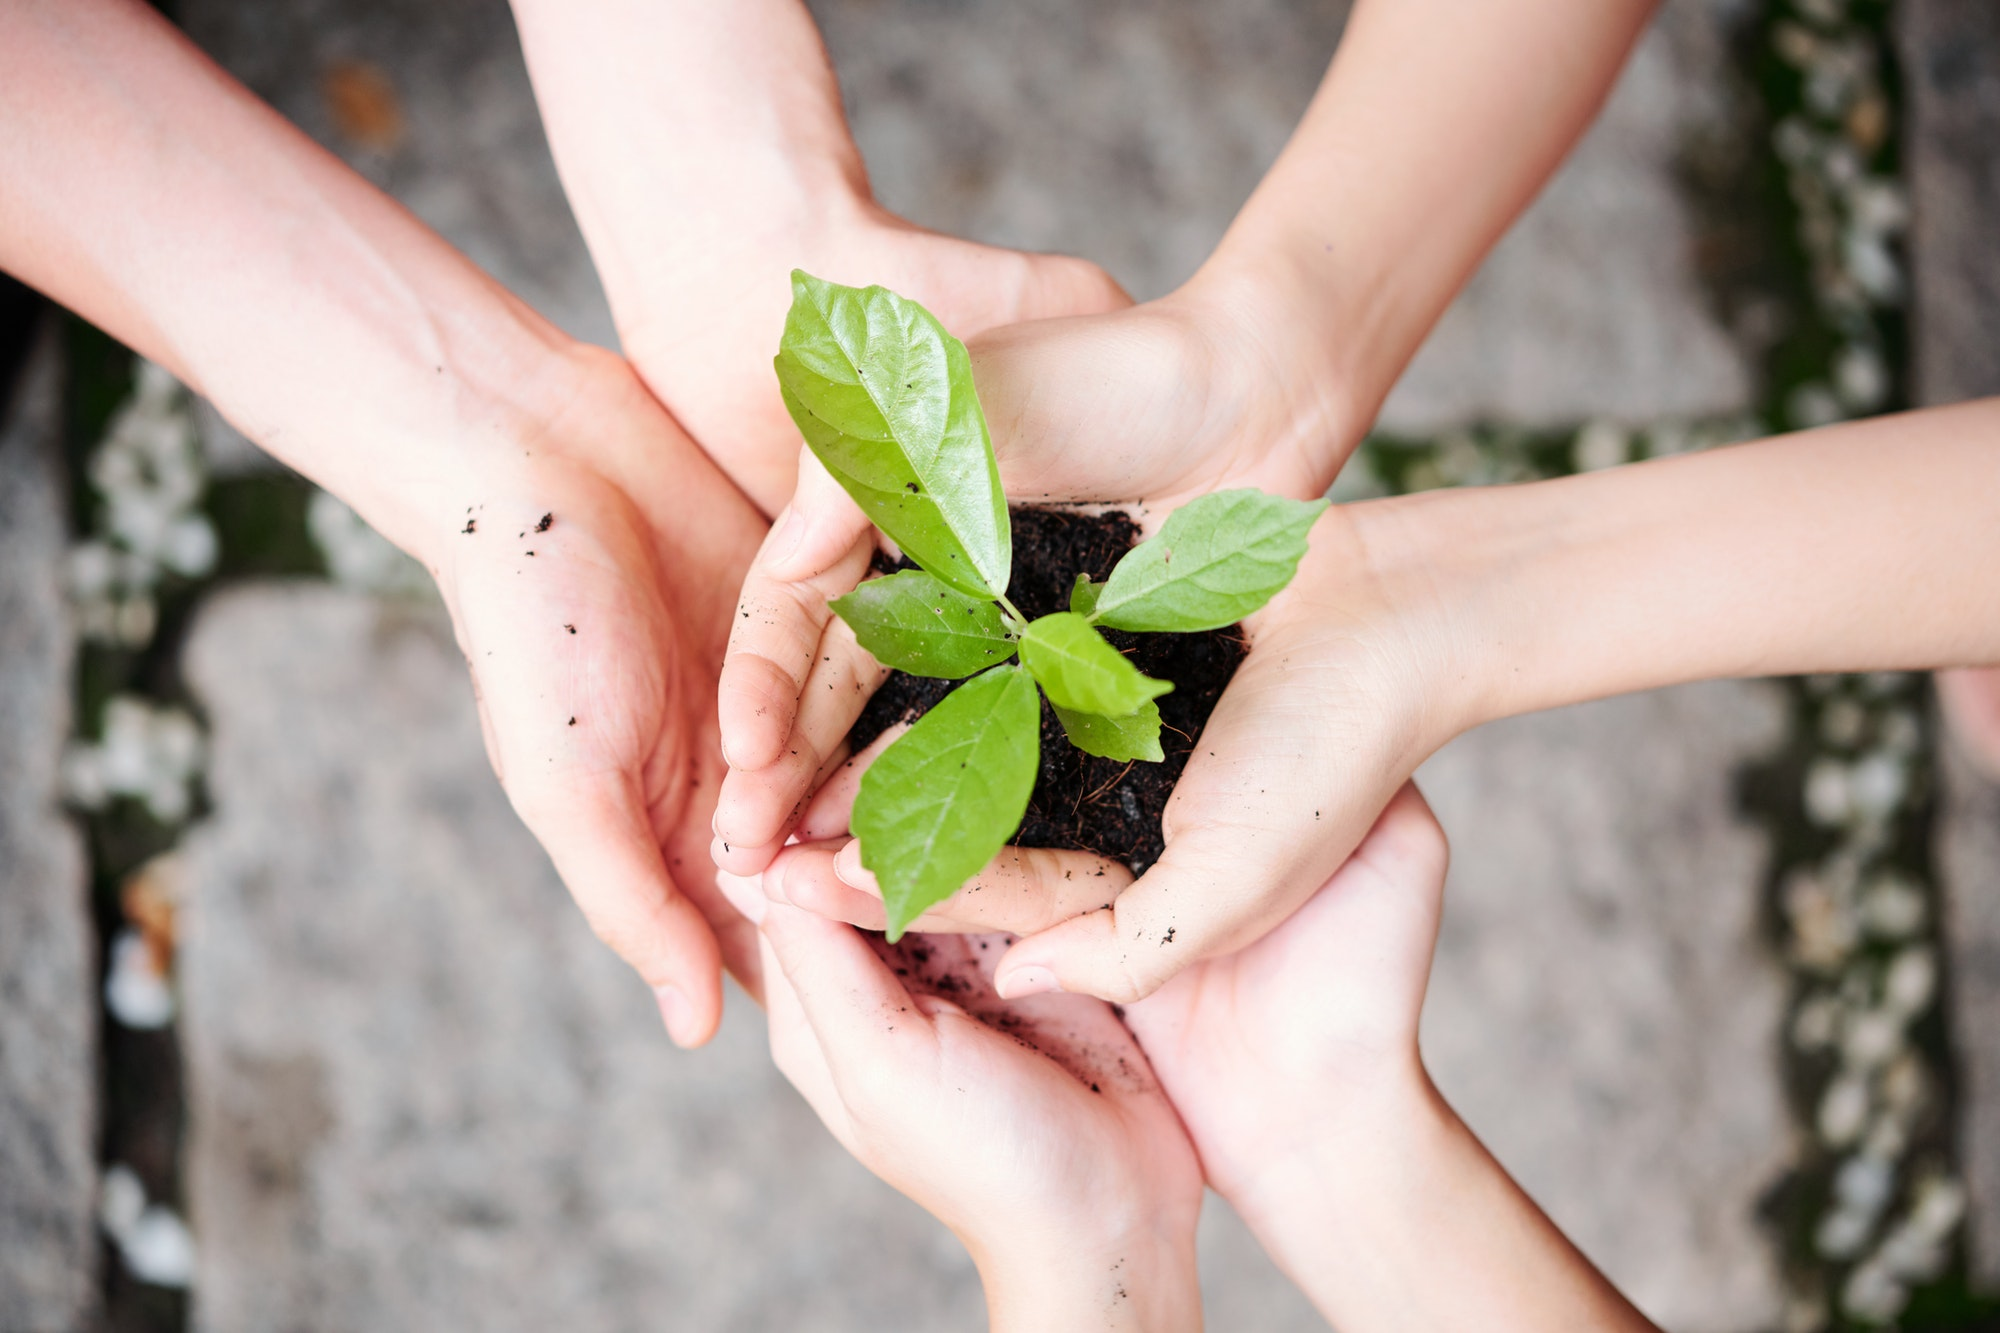 Green plant in people's hands